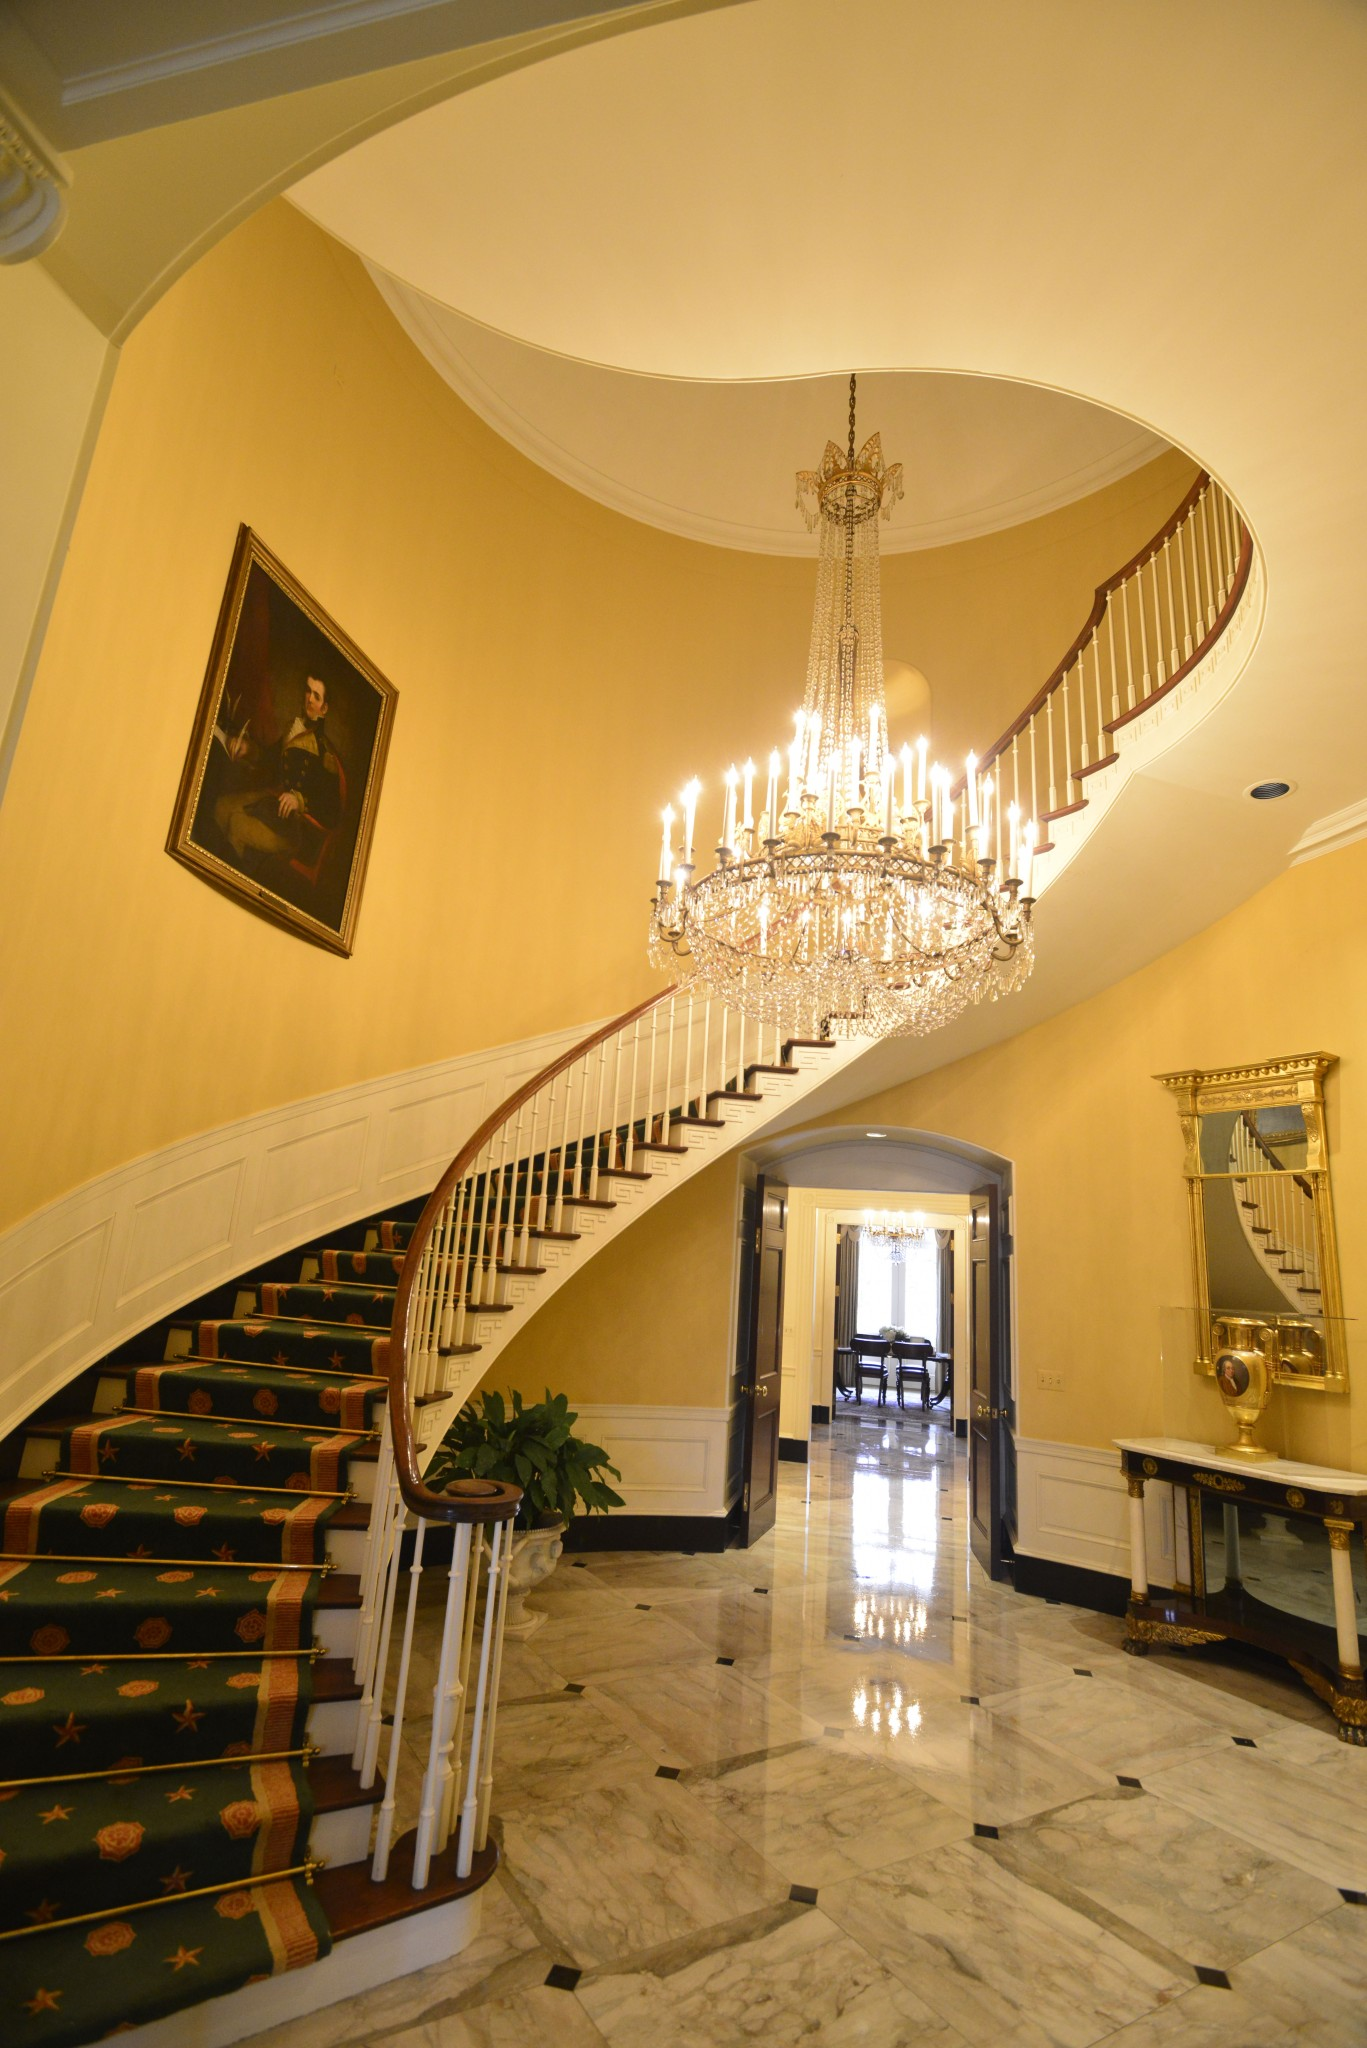 Main staircase of the Governor's Mansion. Photo by Christopher Oquendo